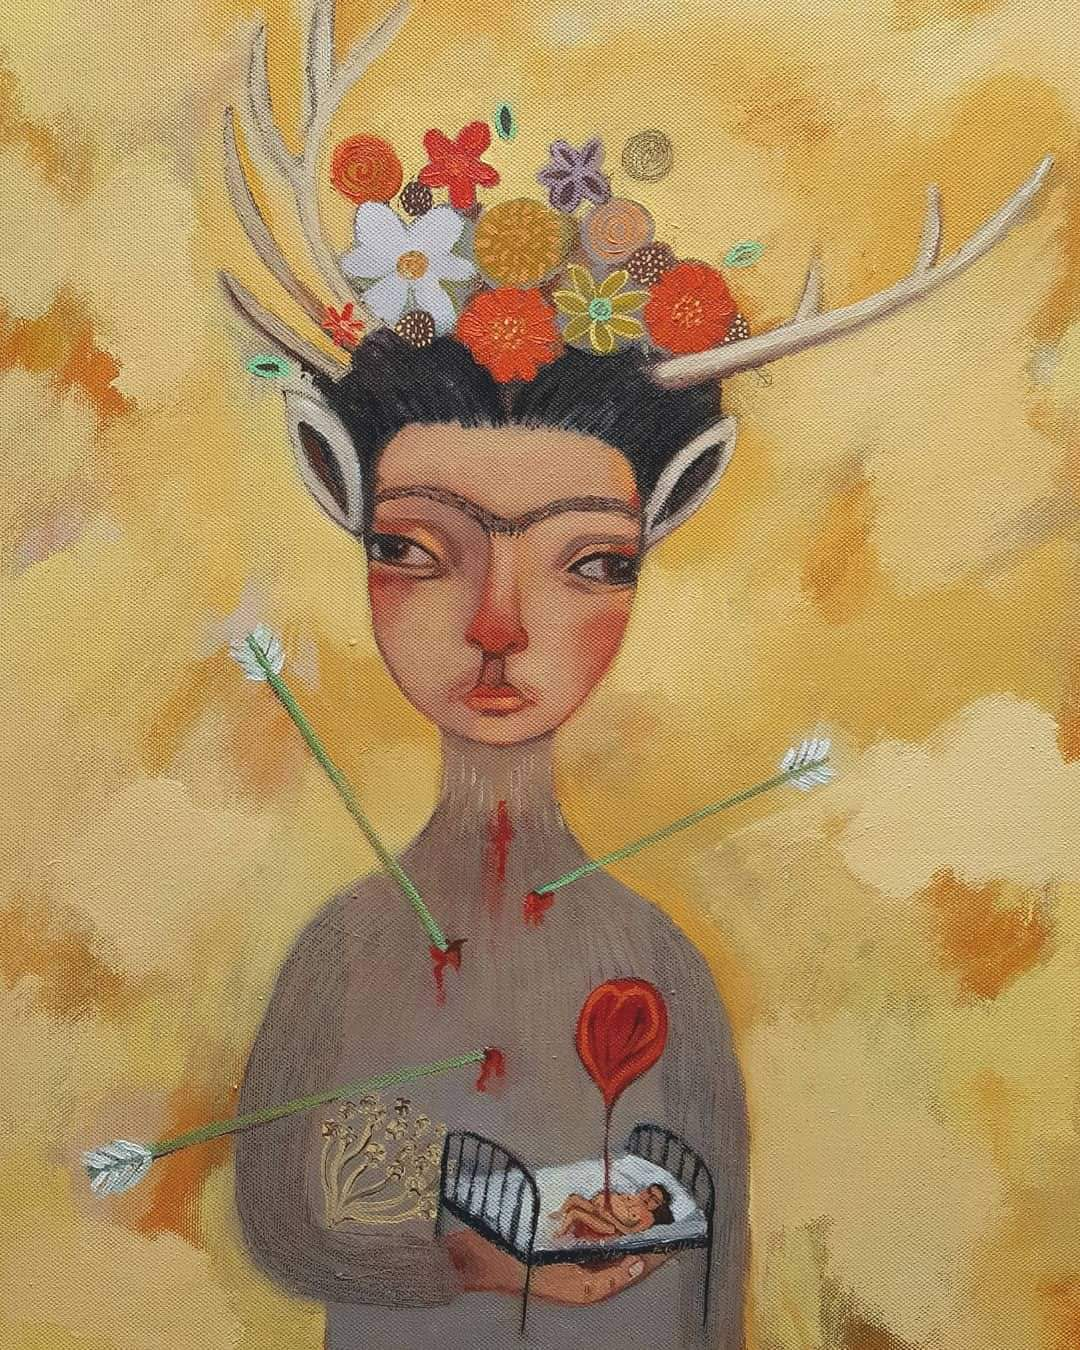 'For The Love Of Frida' by Siobhan Purdy